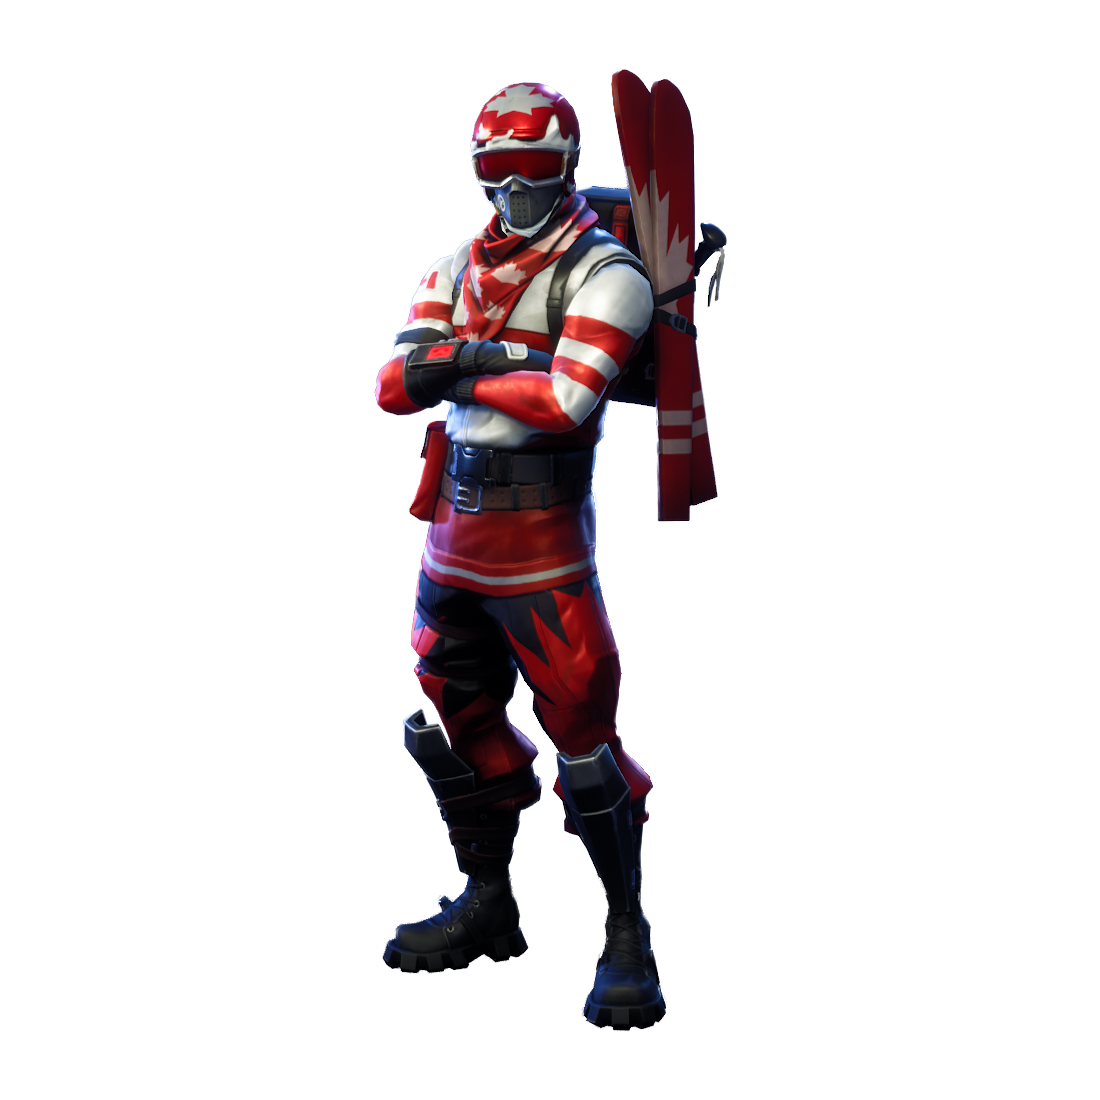 Toy Figure Knight Royale Fortnite Battle Action PNG Image